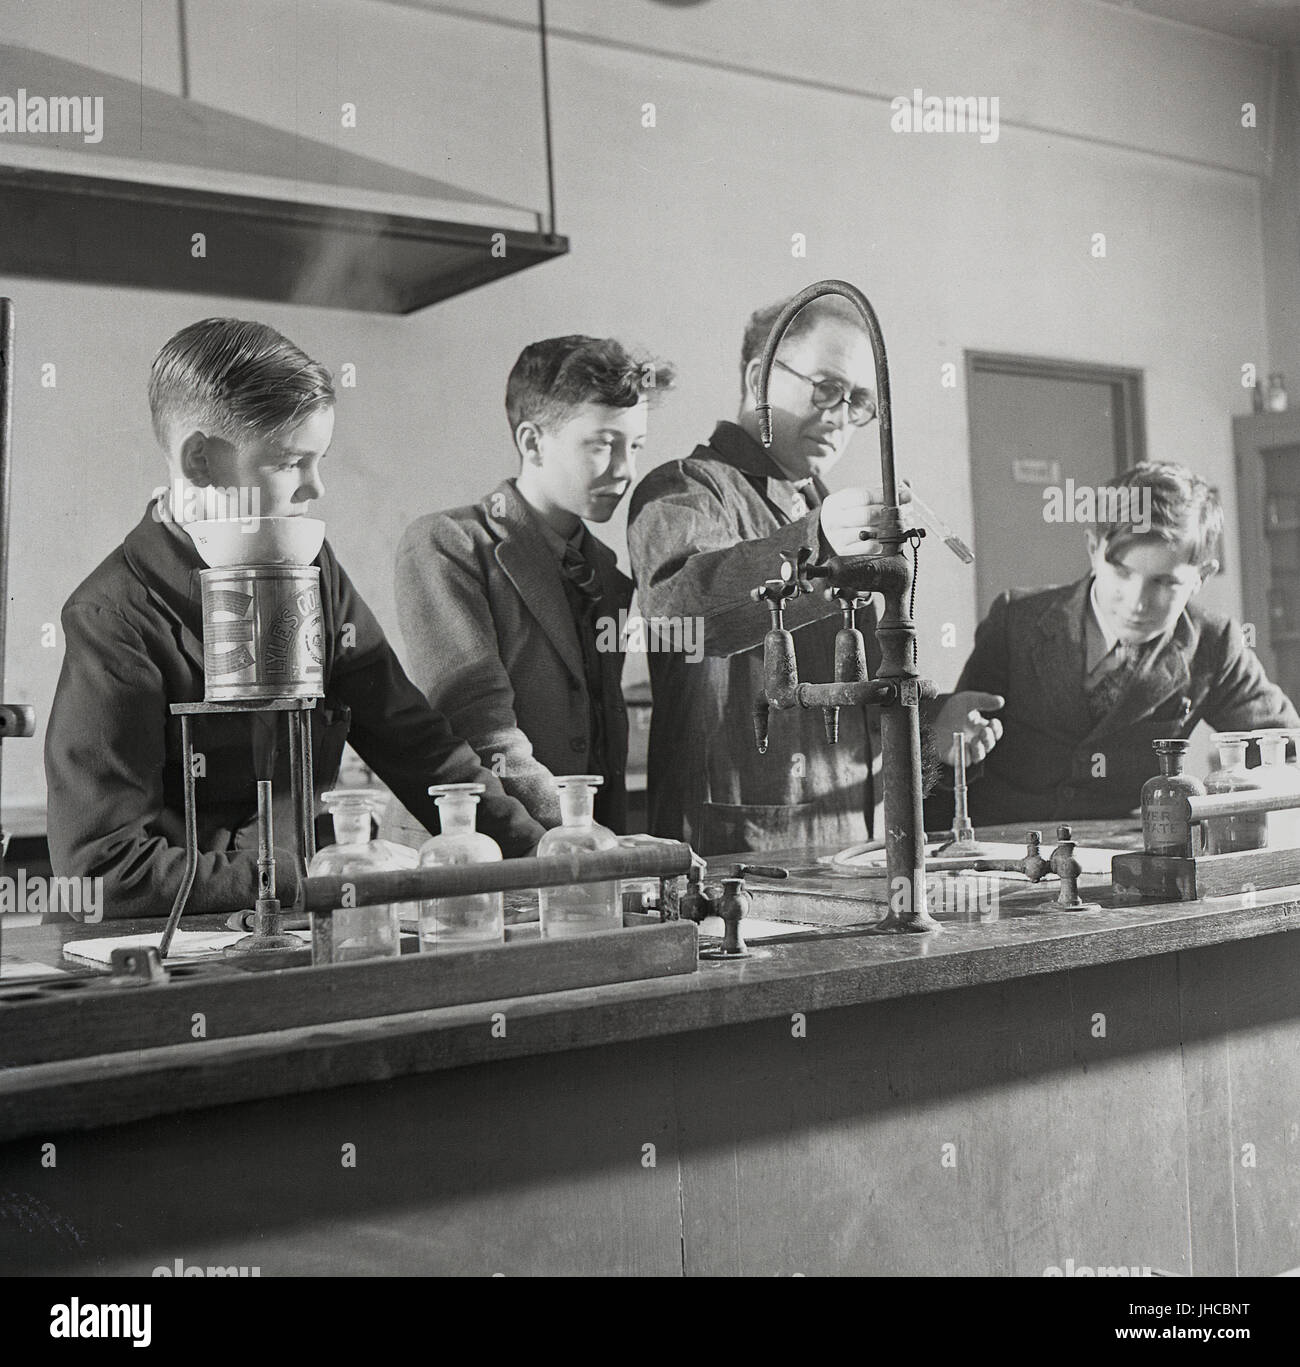 1950s, historical, England, UK, science lab of the South West Essex Technical College - know locally as the 'People's University'. Picture shows a male teacher using a testube to demonstrate how different chemicals react when mixed together. Stock Photo